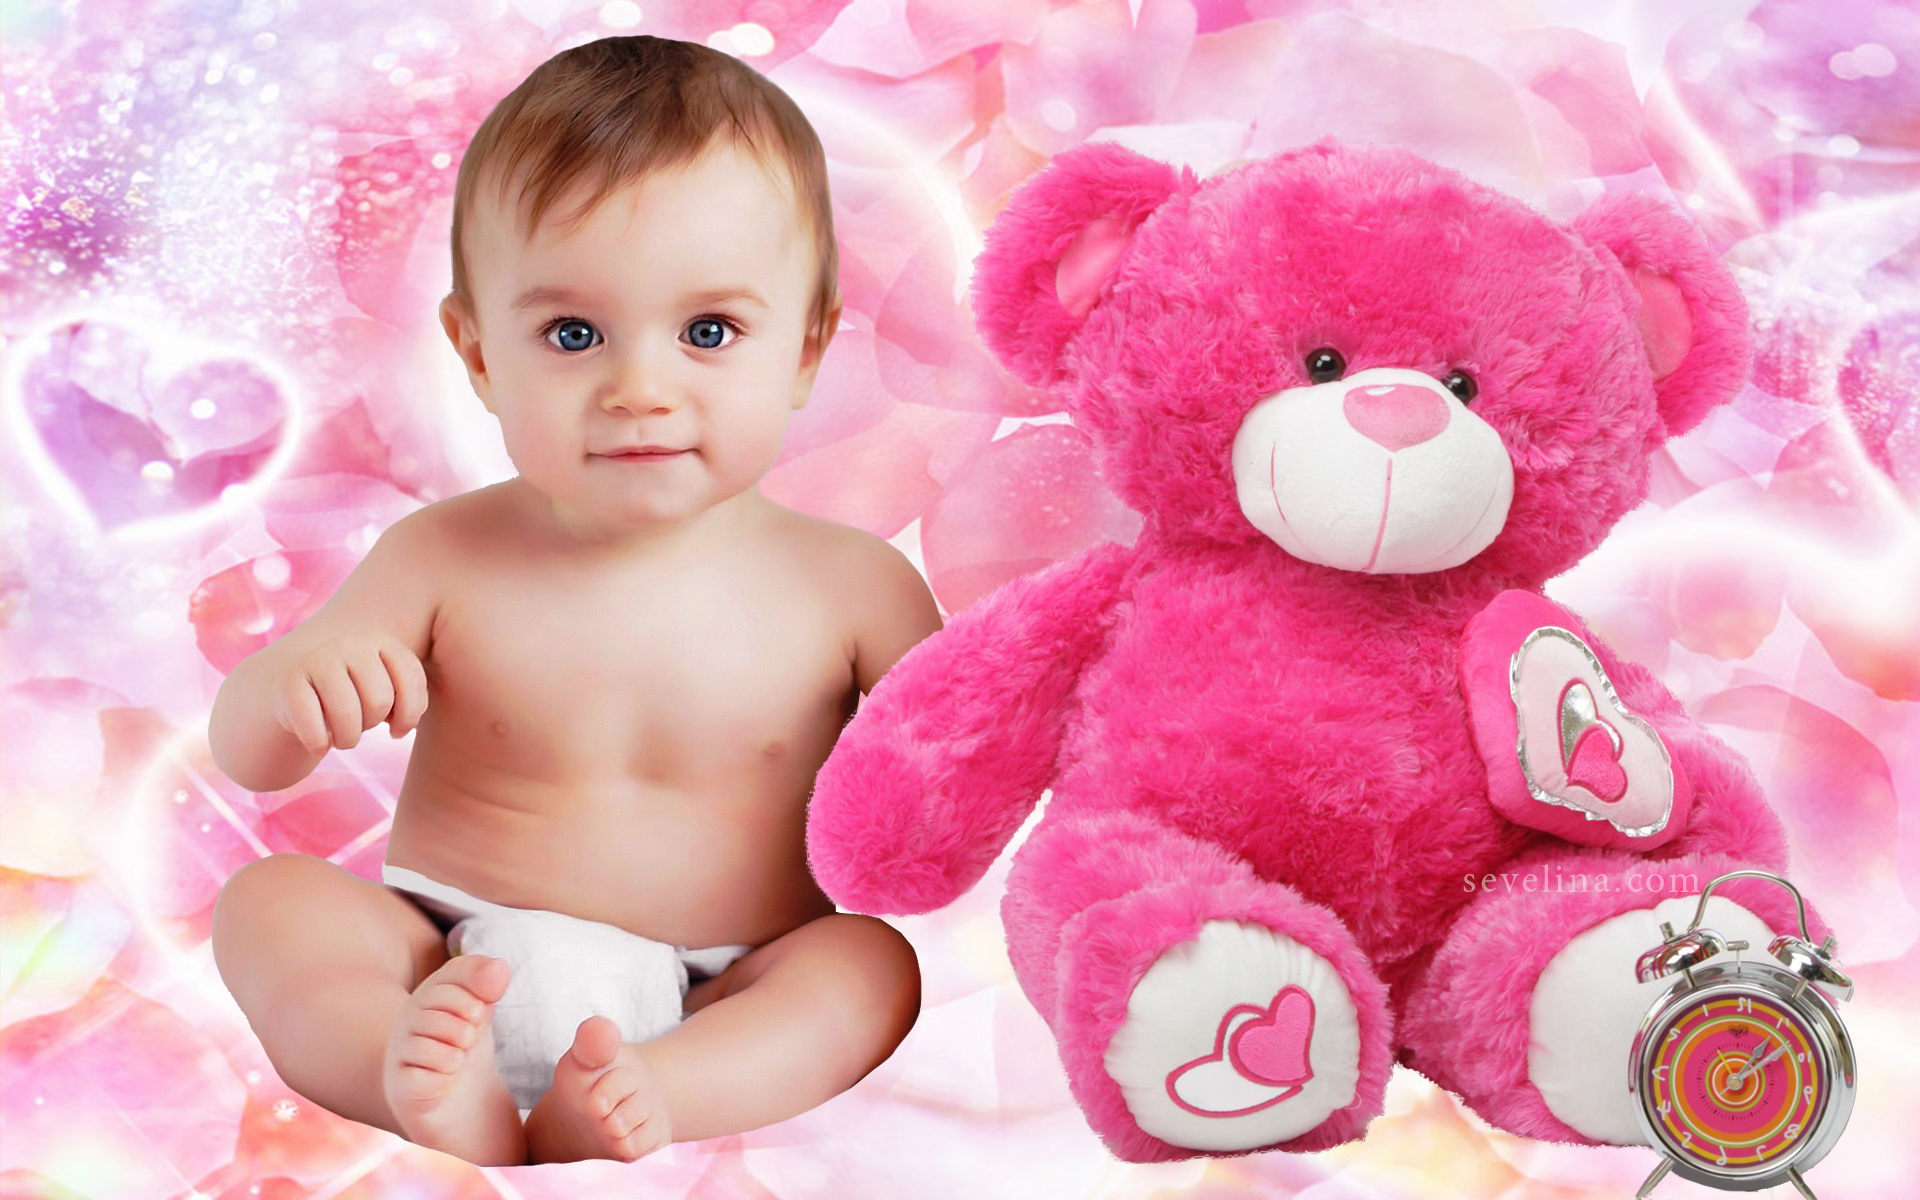 Baby Love Images Wallpaper : Top 14 amazing Valentines day wallpaper 2014 Sevelina Games for girls